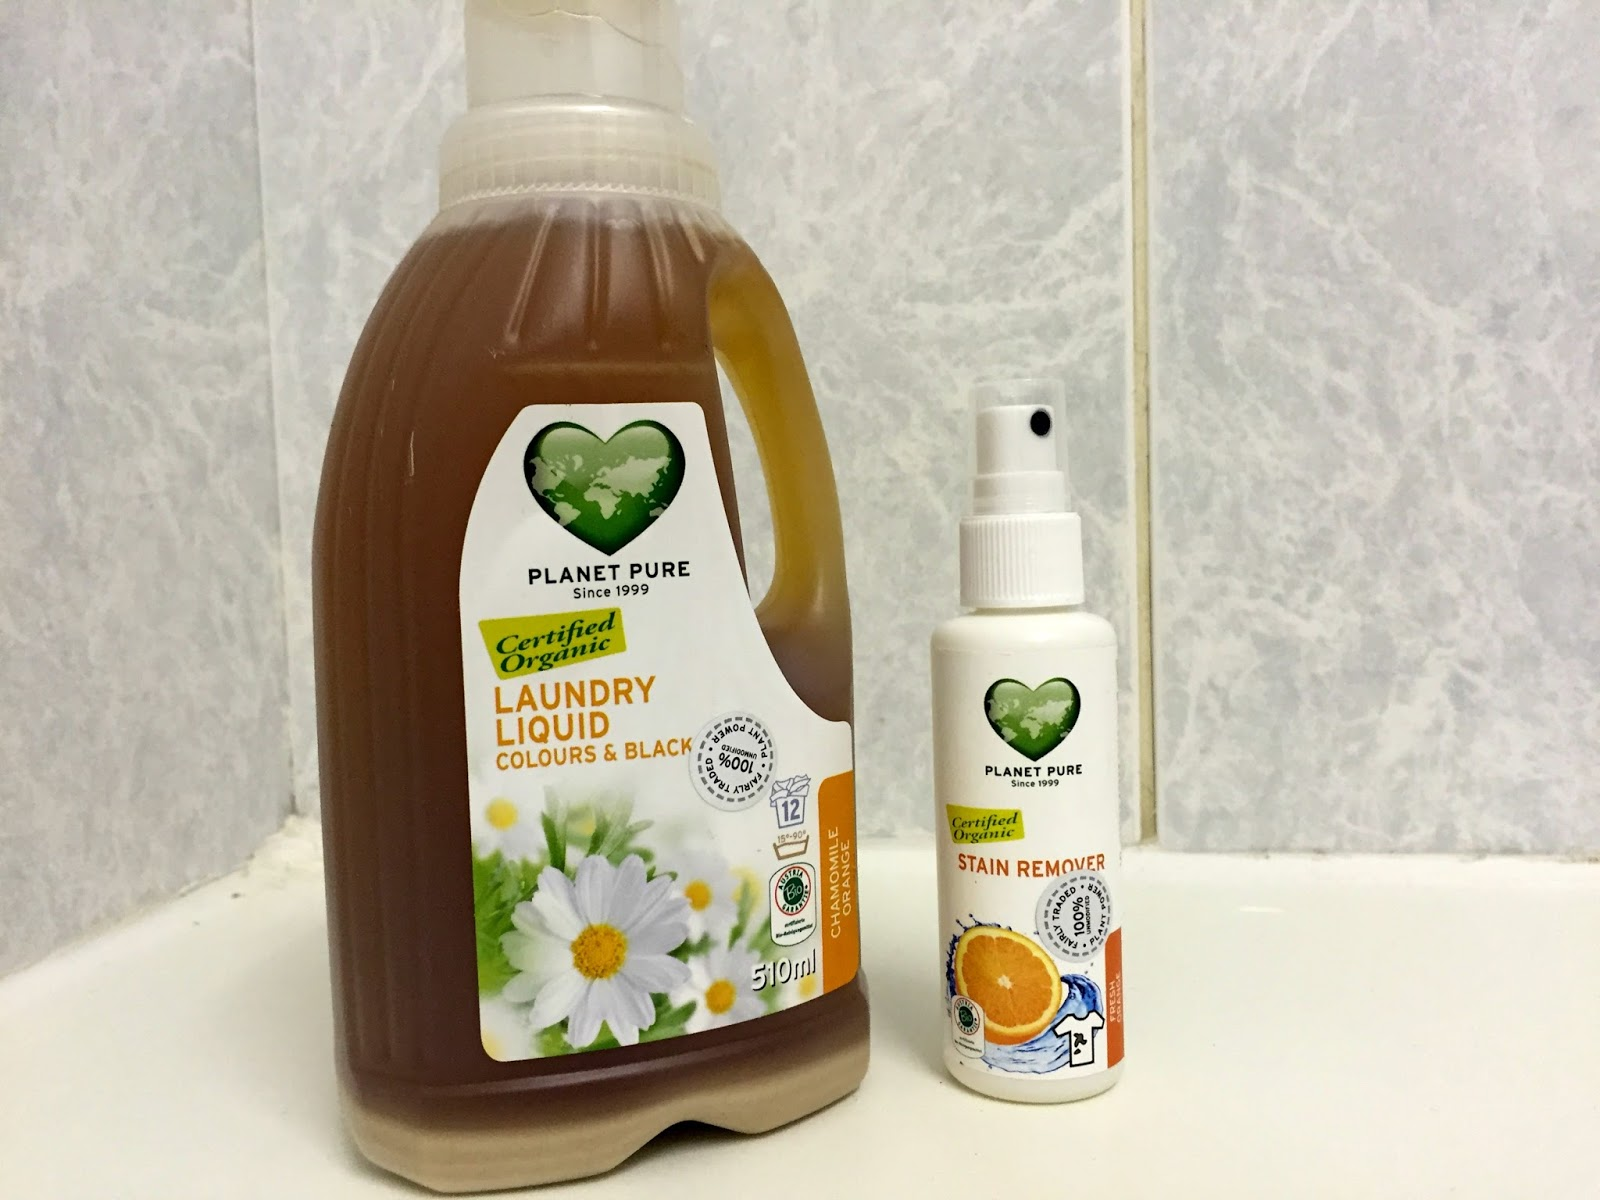 Planet Pure Organic Laundry Liquid